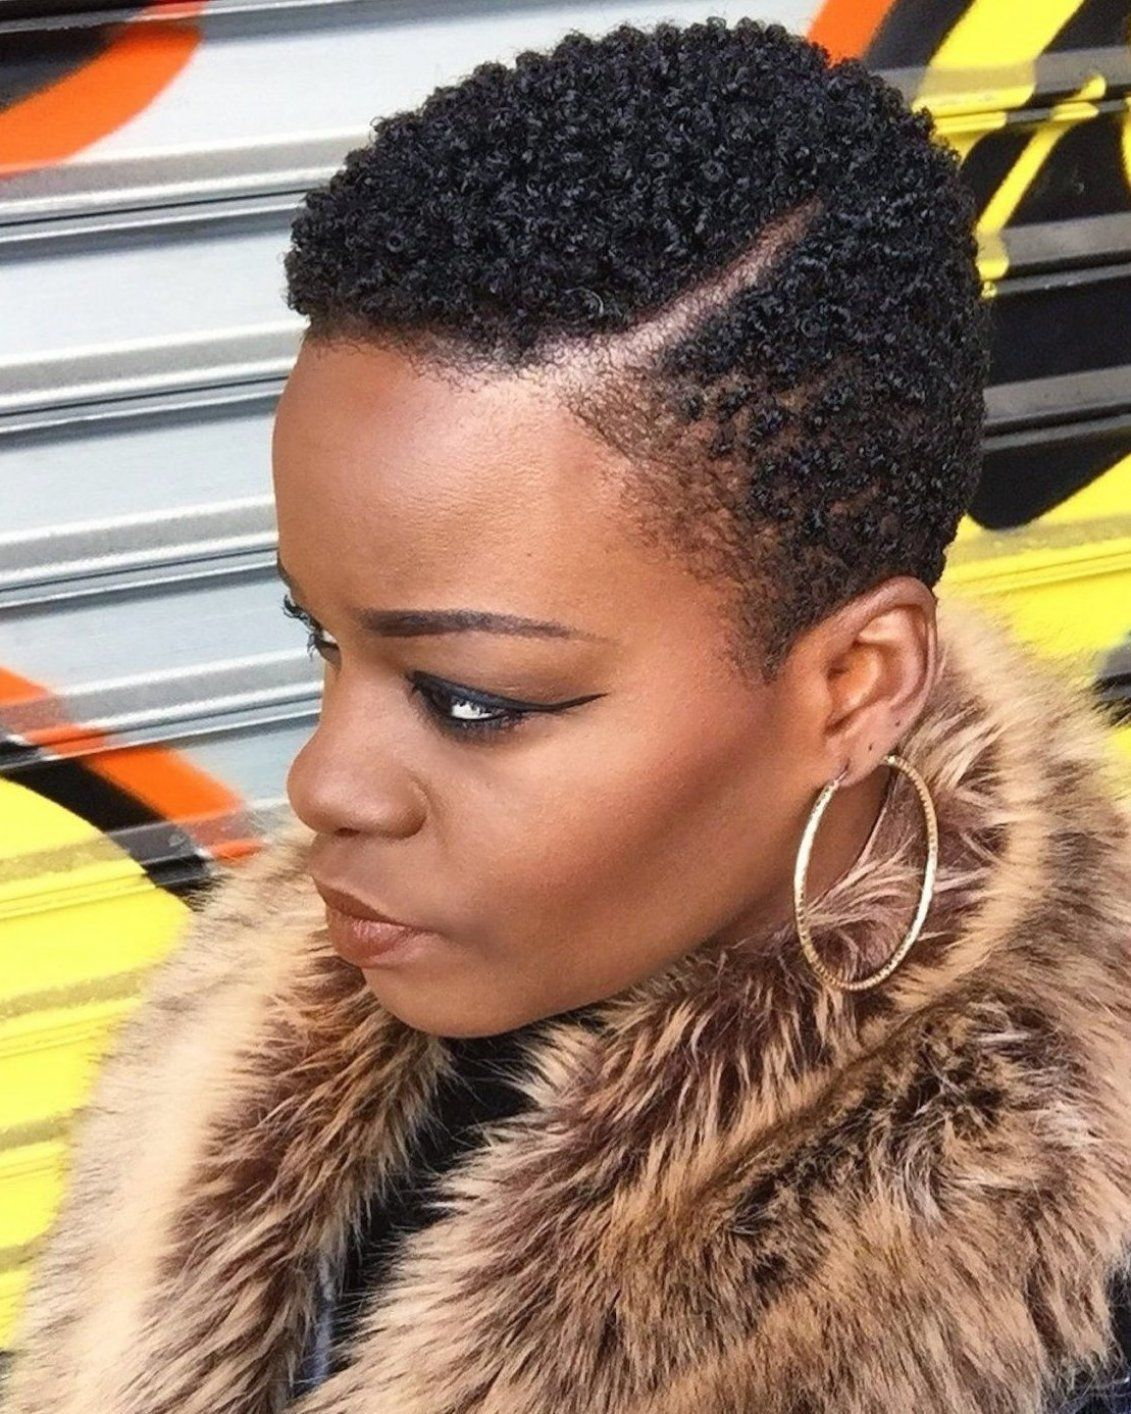 4c Hair Tapered Cut : tapered, Tandy, Napal, Natural, Hairstyles, Black, Women, Short, Styles,, Hair,, Tapered